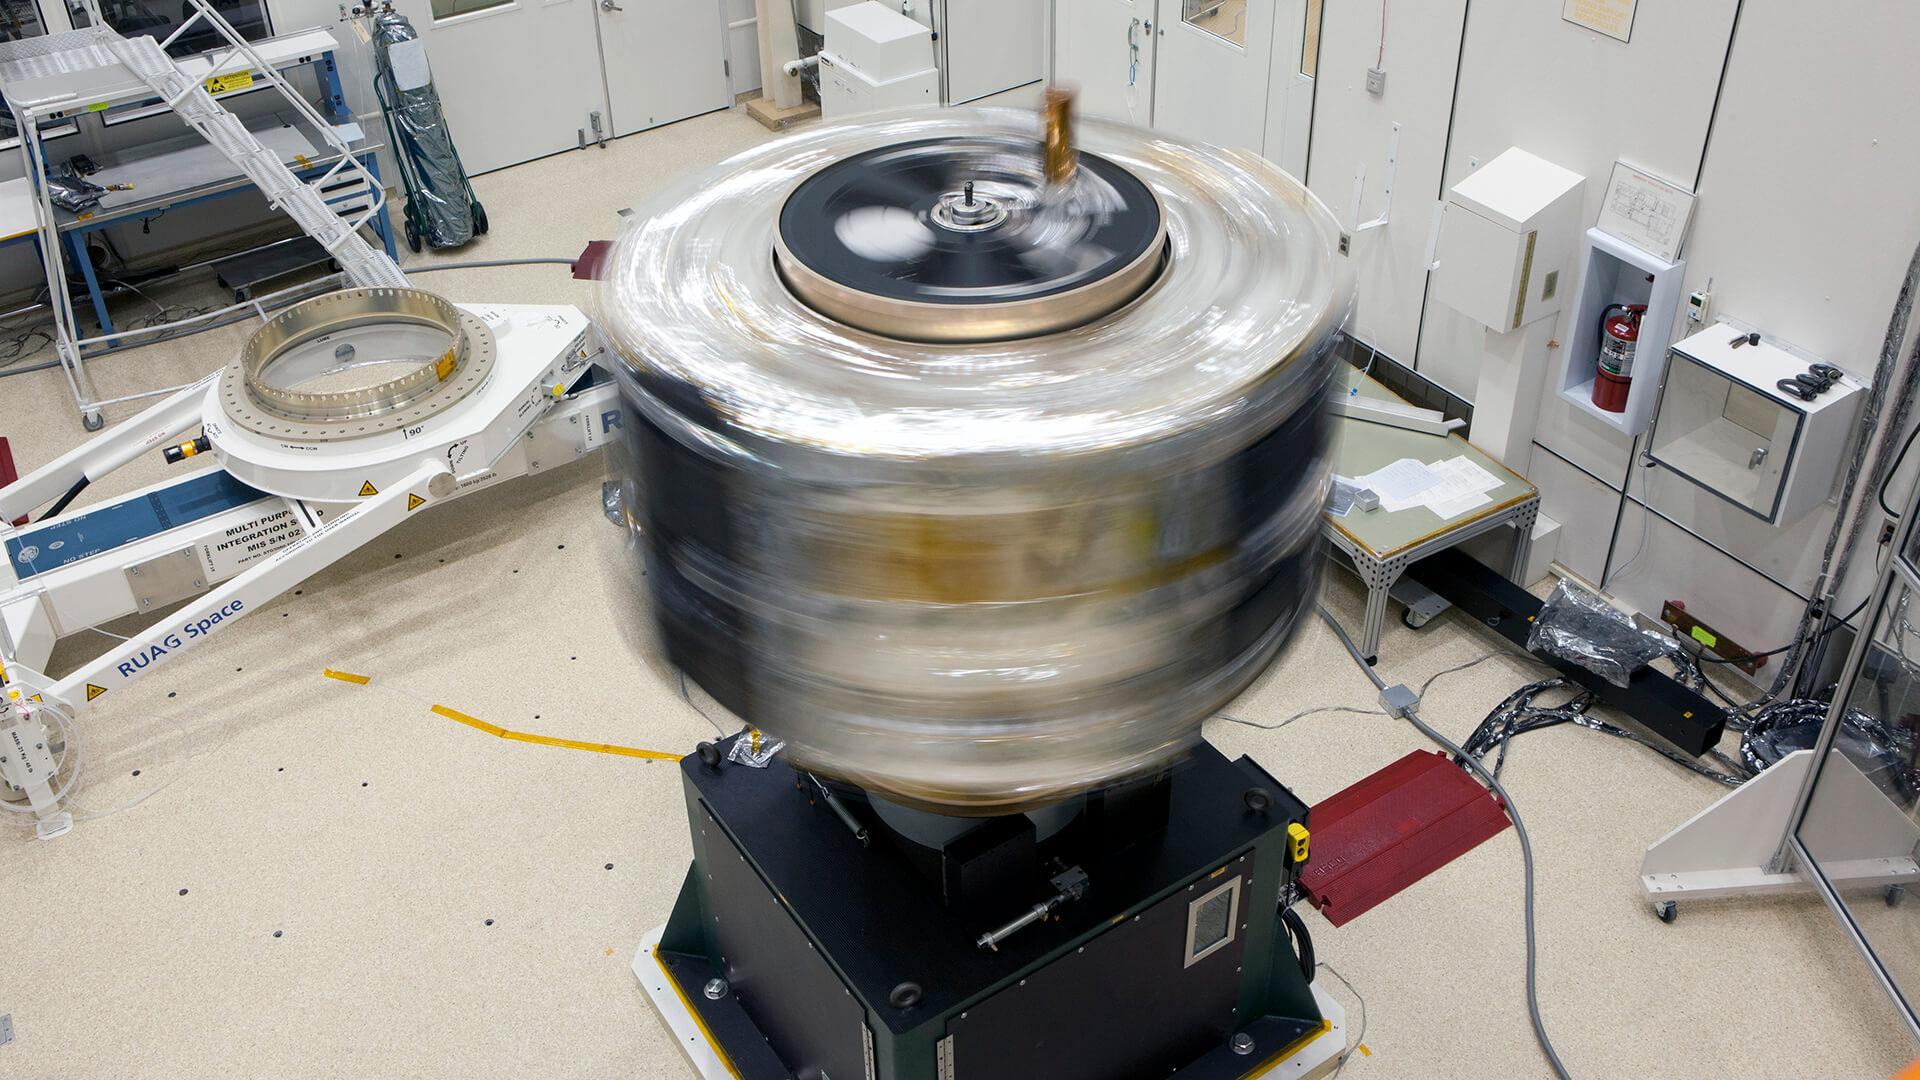 Large spinning mechanism, testing the structural stability of spacecraft parts